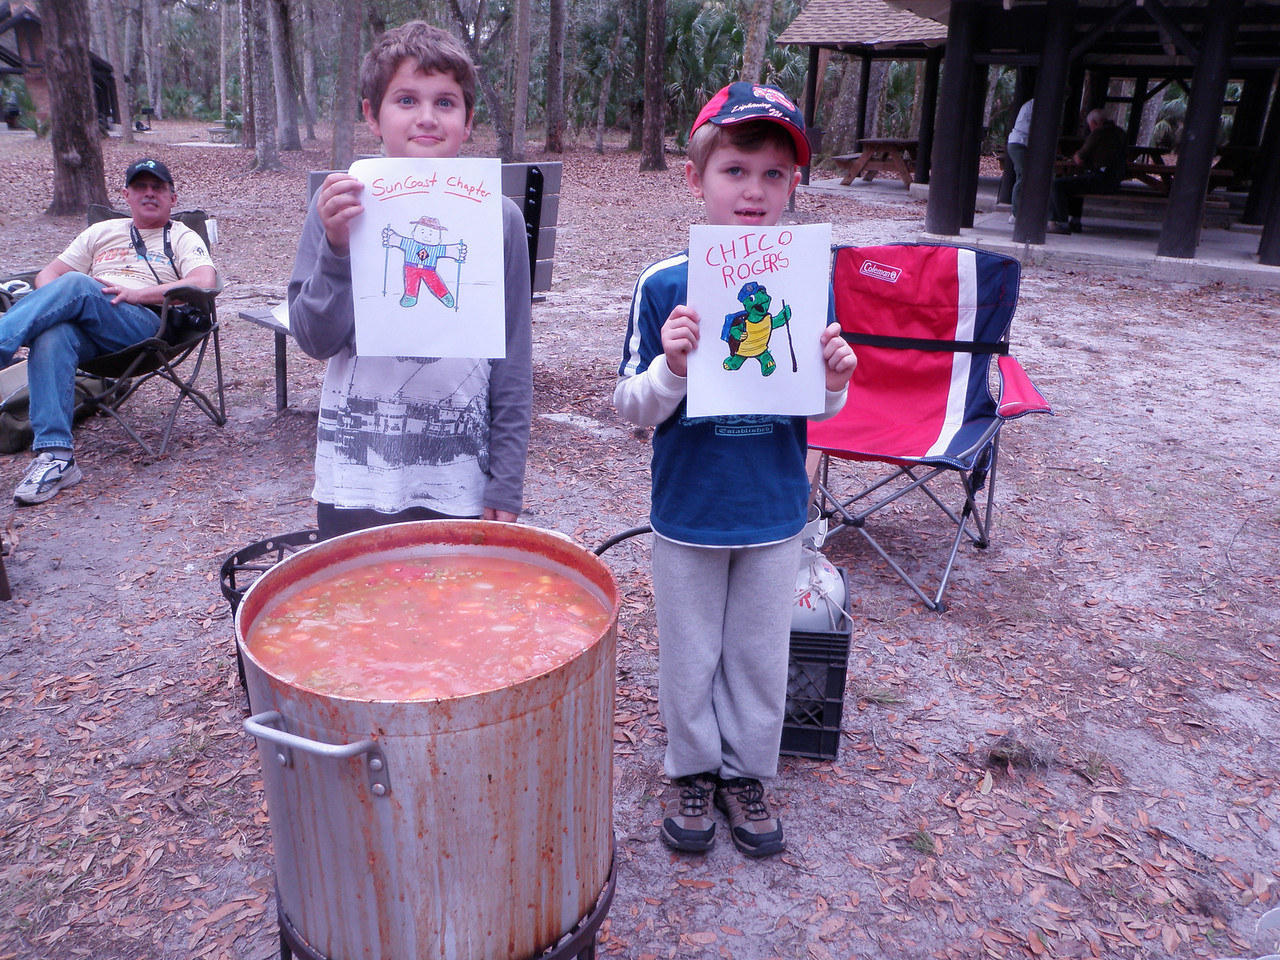 Ben & Marcus with their new friends stirring stone soup, Suncoast chapter meeting<br /> Photo by Tom Hammond